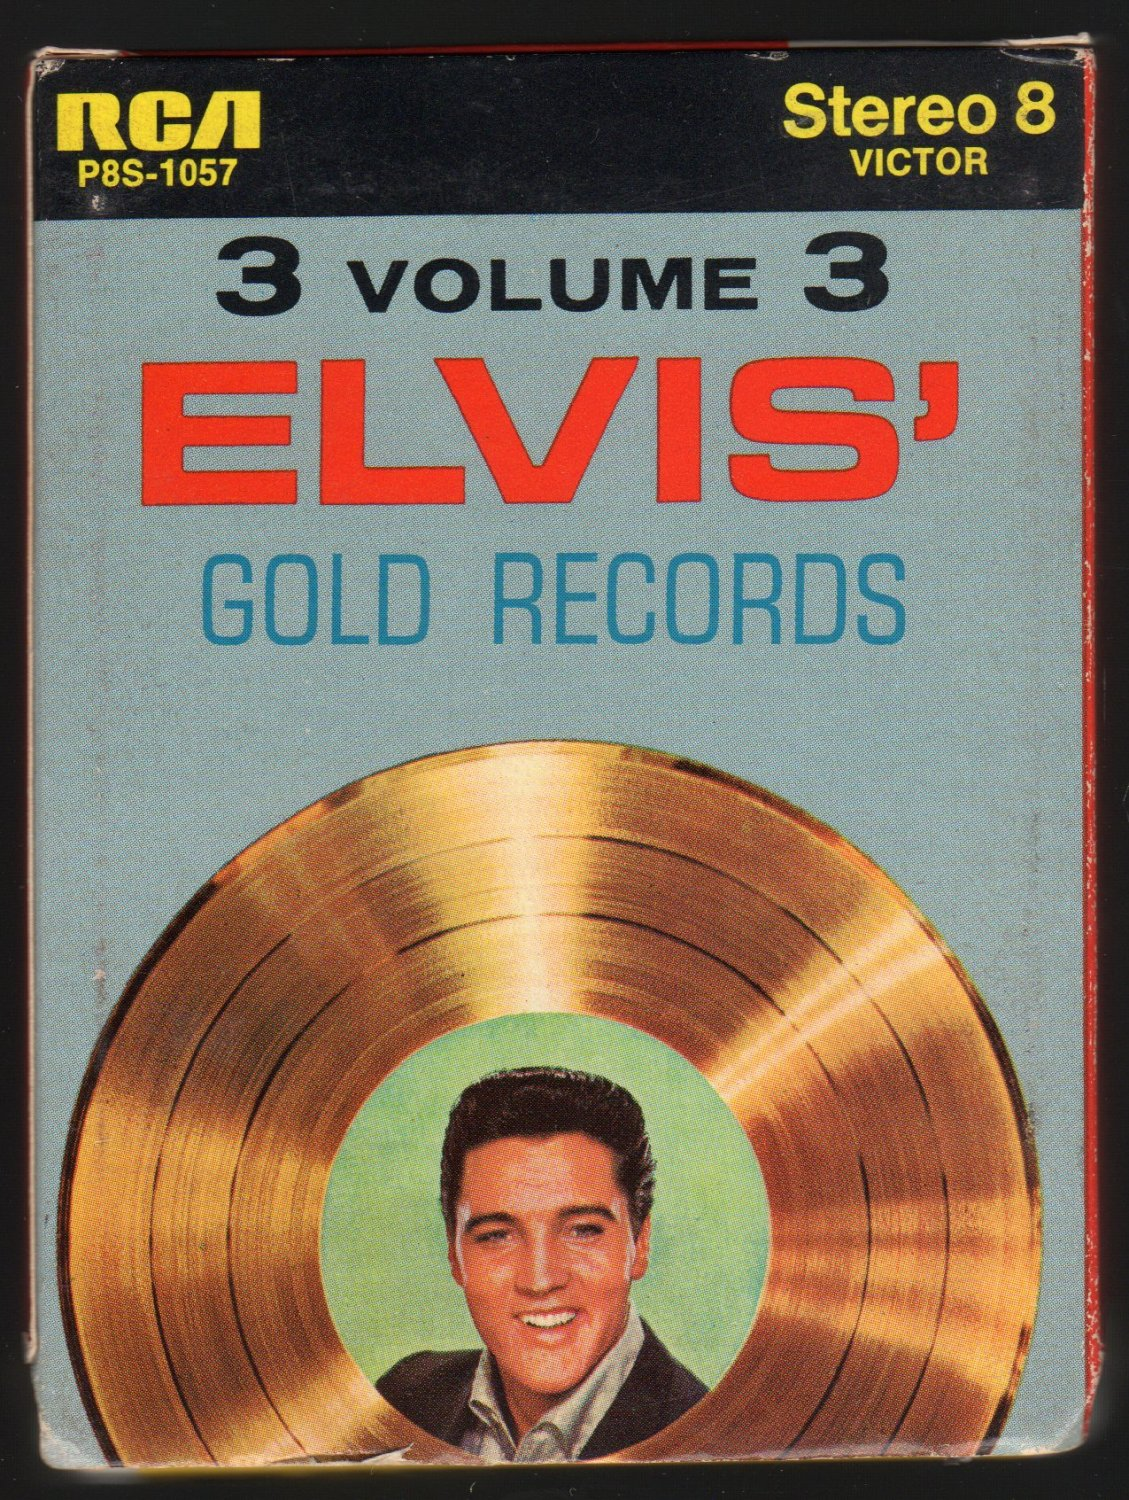 Elvis Presley - Gold Records Vol 3 1963 RCA Re-issue A43 8-TRACK TAPE